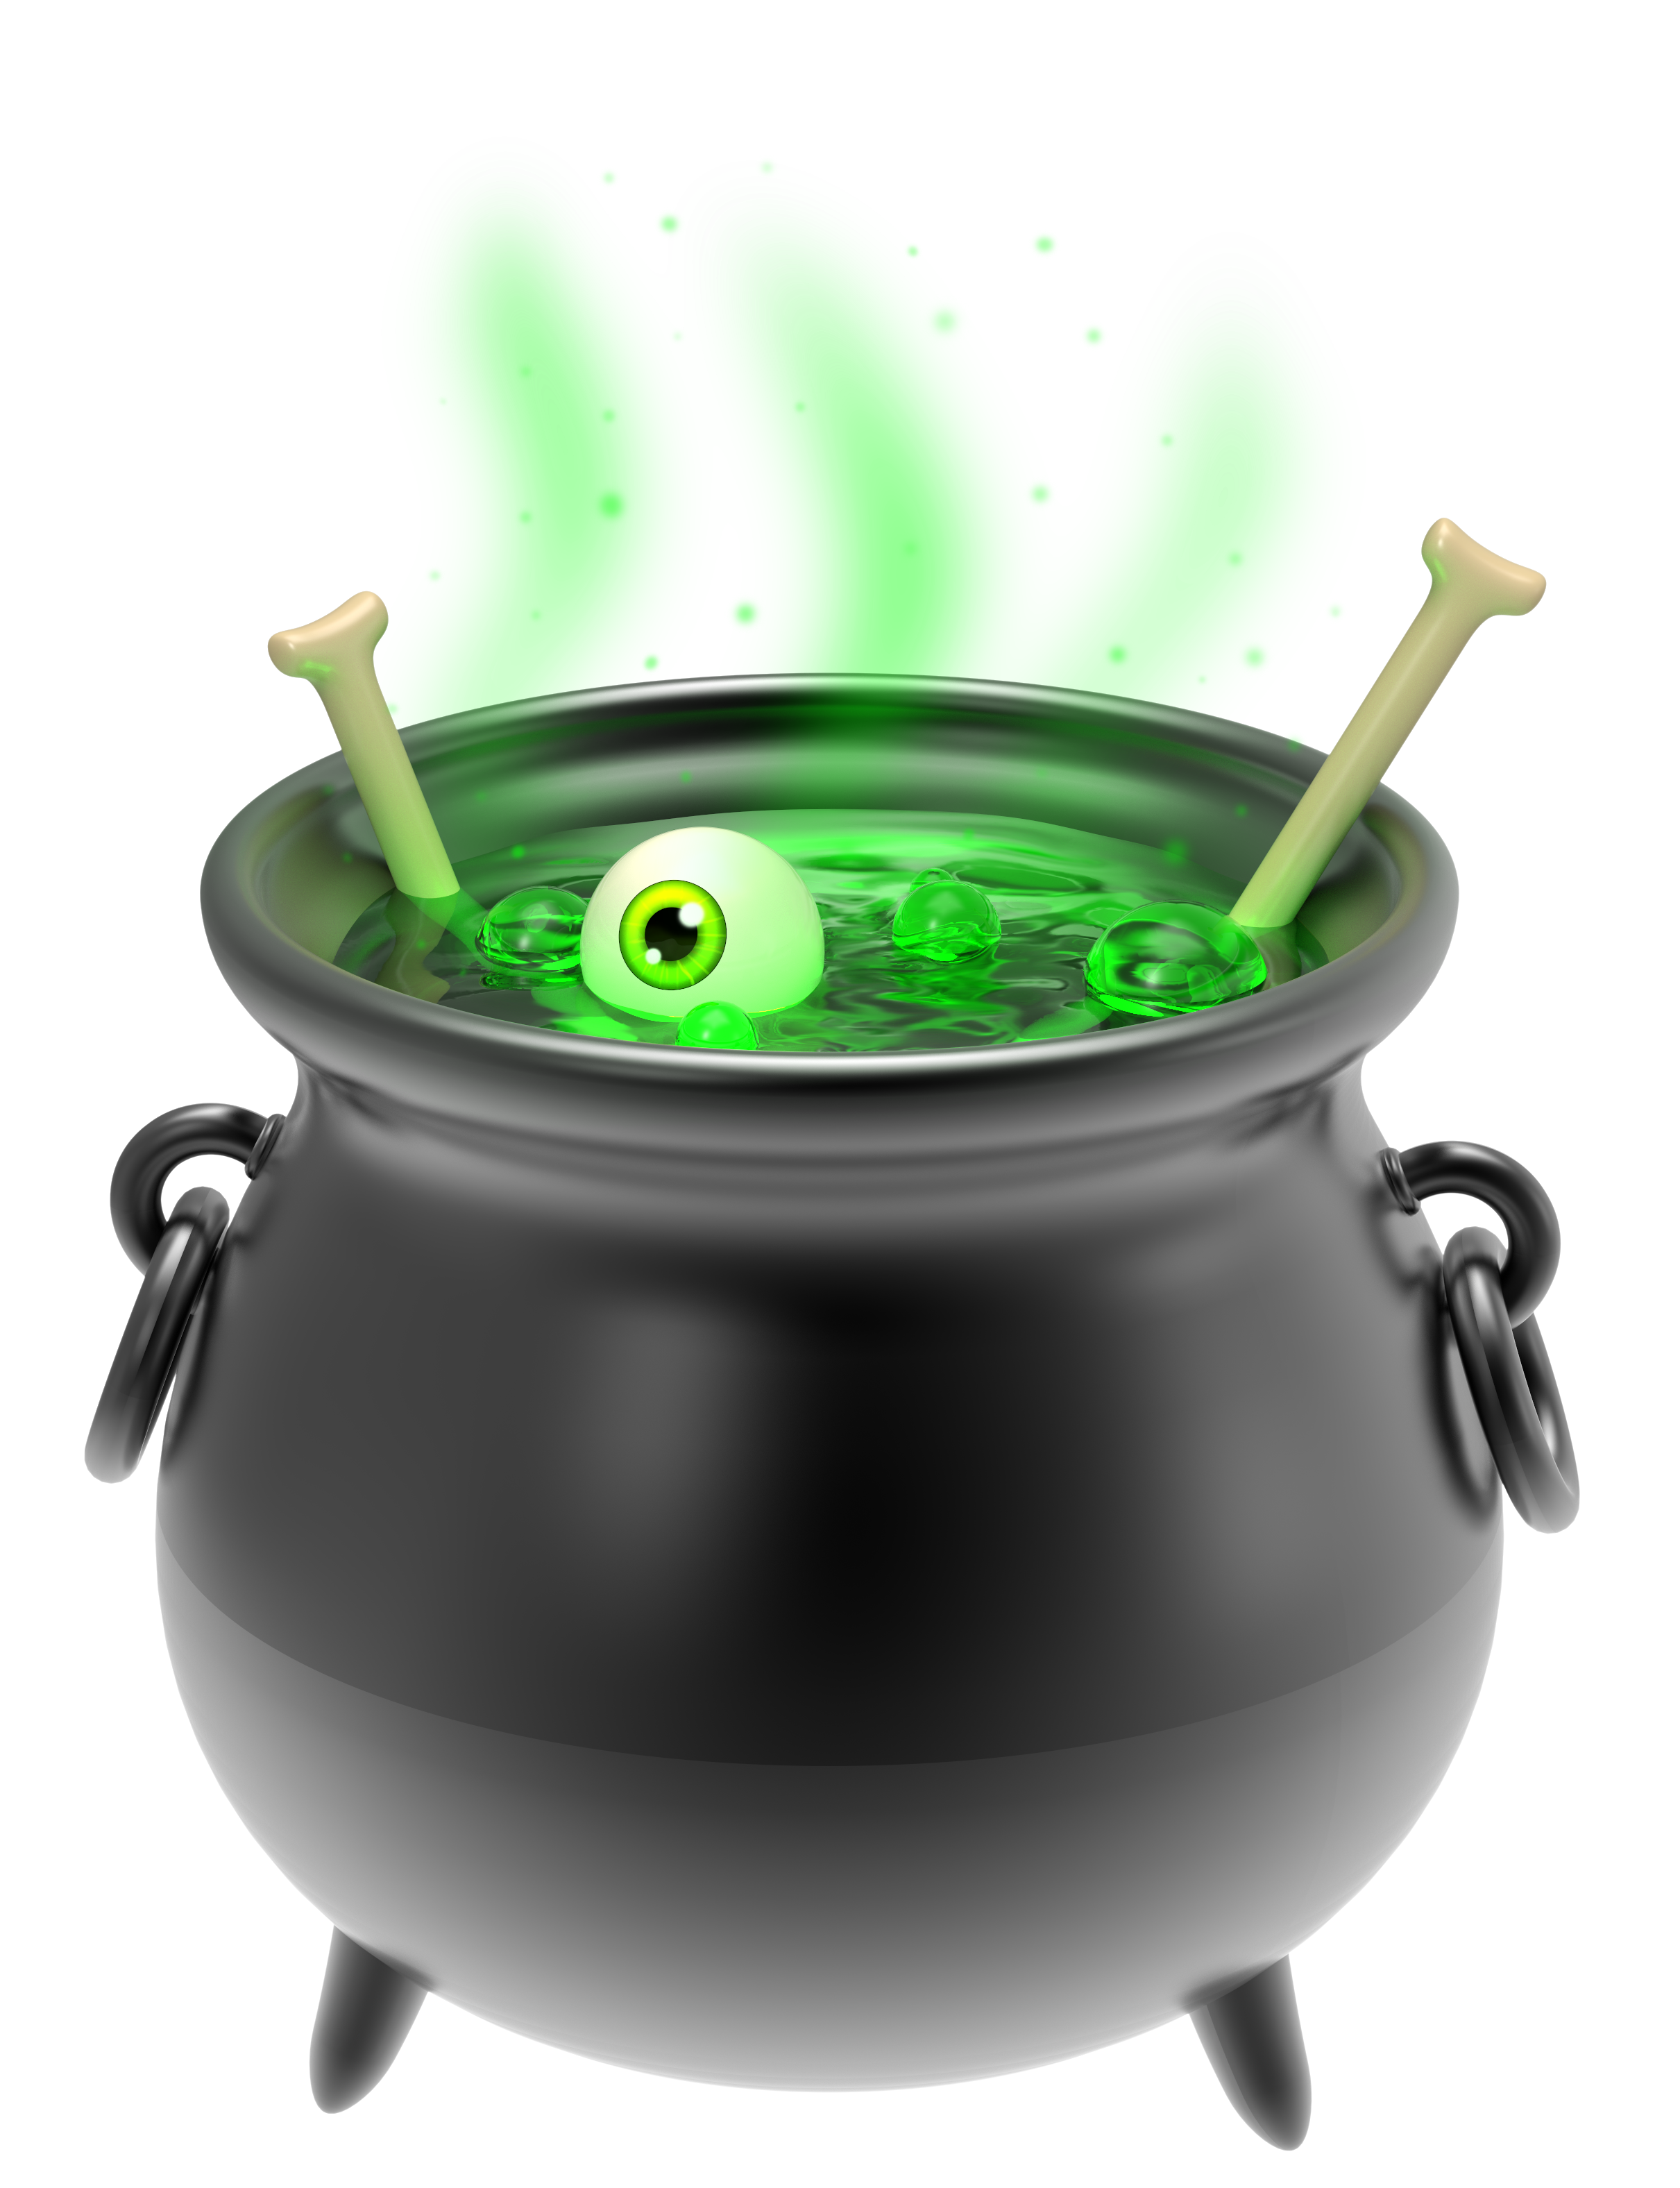 Witch black cauldron clipart image.